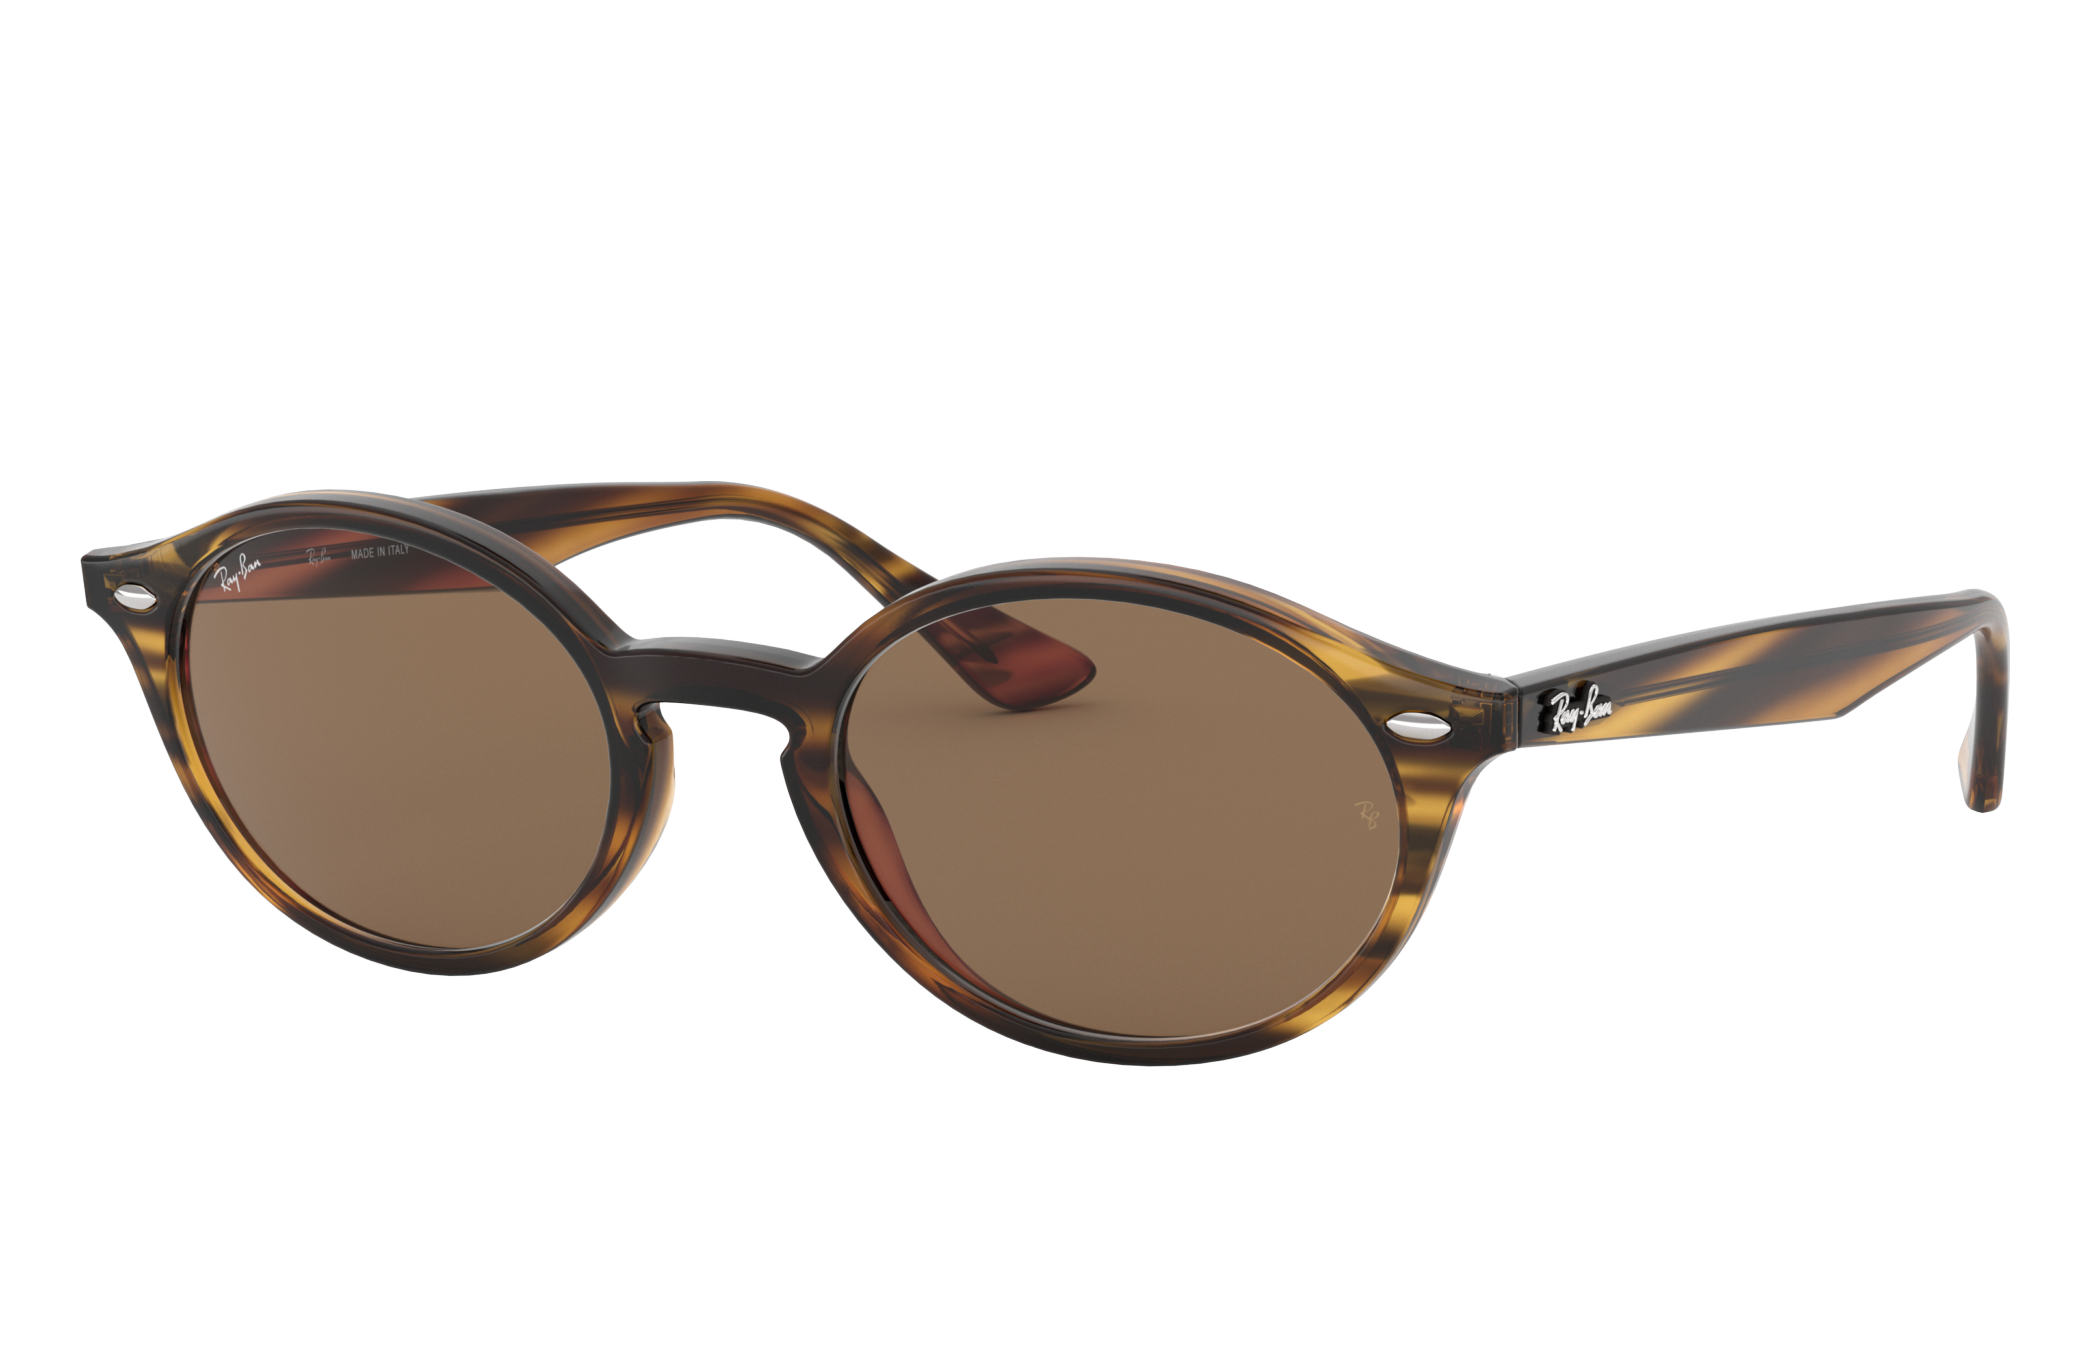 Ray-Ban Rb4315 Striped Red Havana, Brown Lenses - RB4315